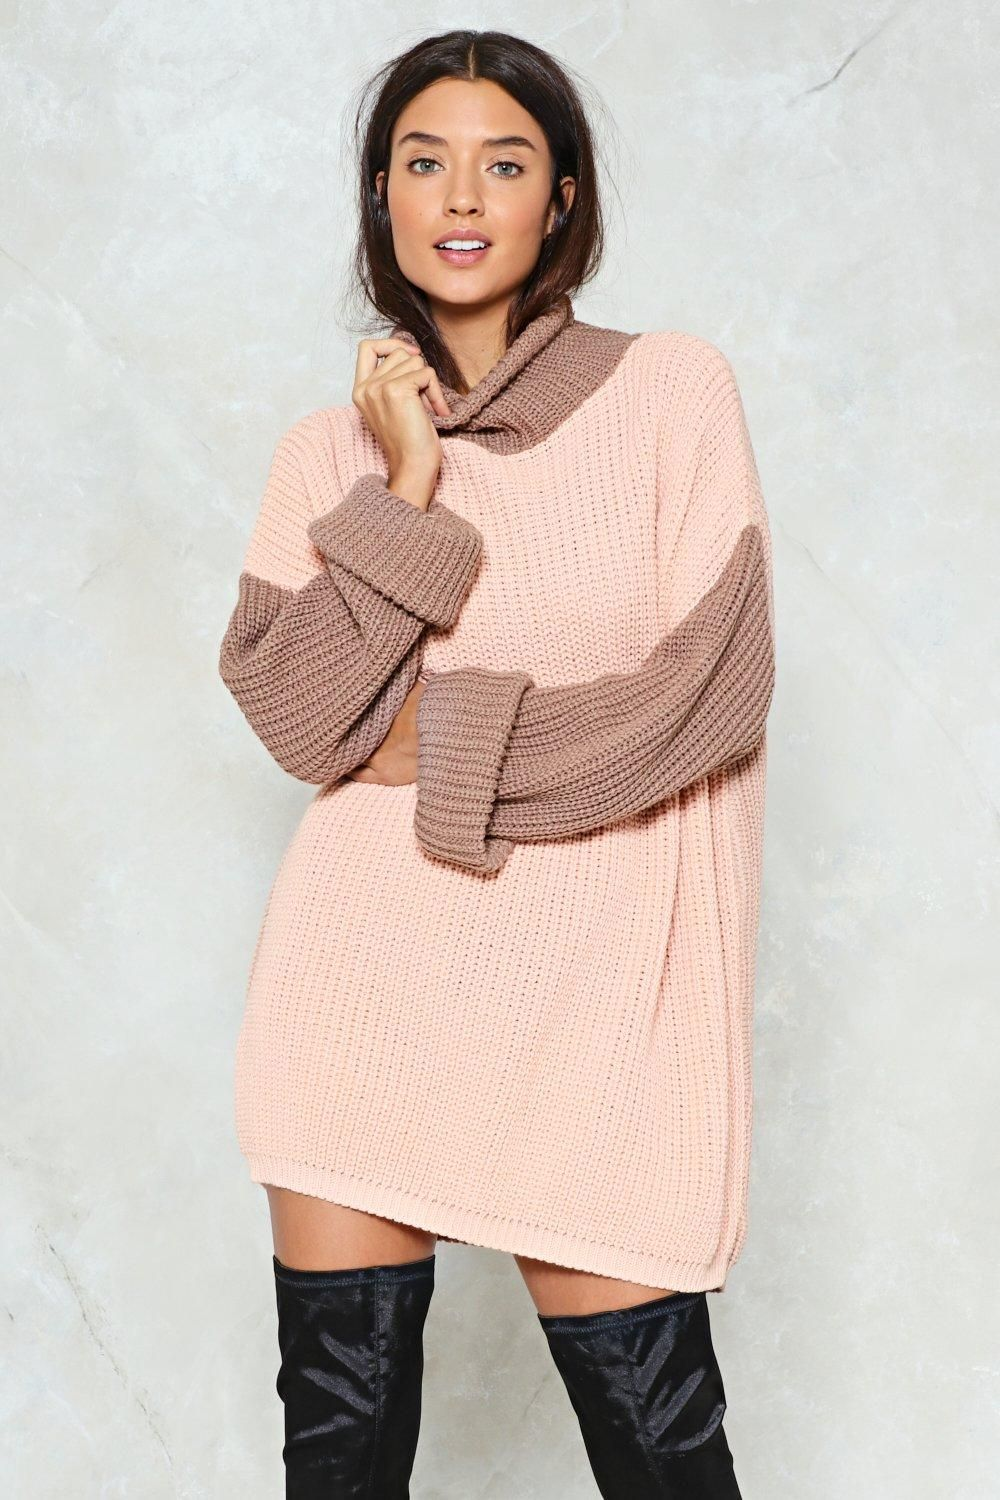 Sweater Dresses for Less